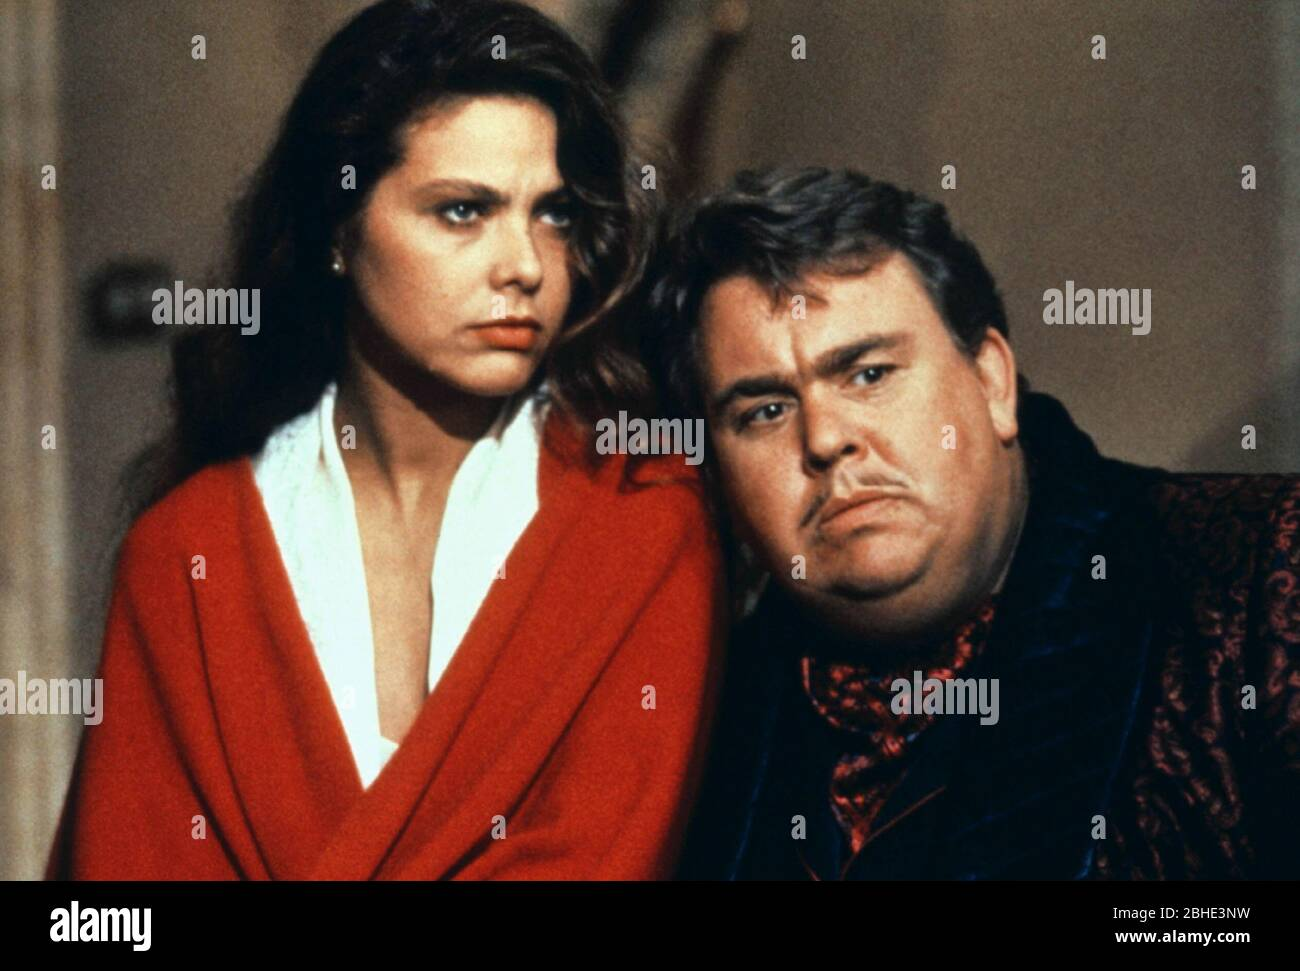 ORNELLA MUTI, JOHN CANDY, ONCE UPON A CRIME..., 1992 Stock Photo